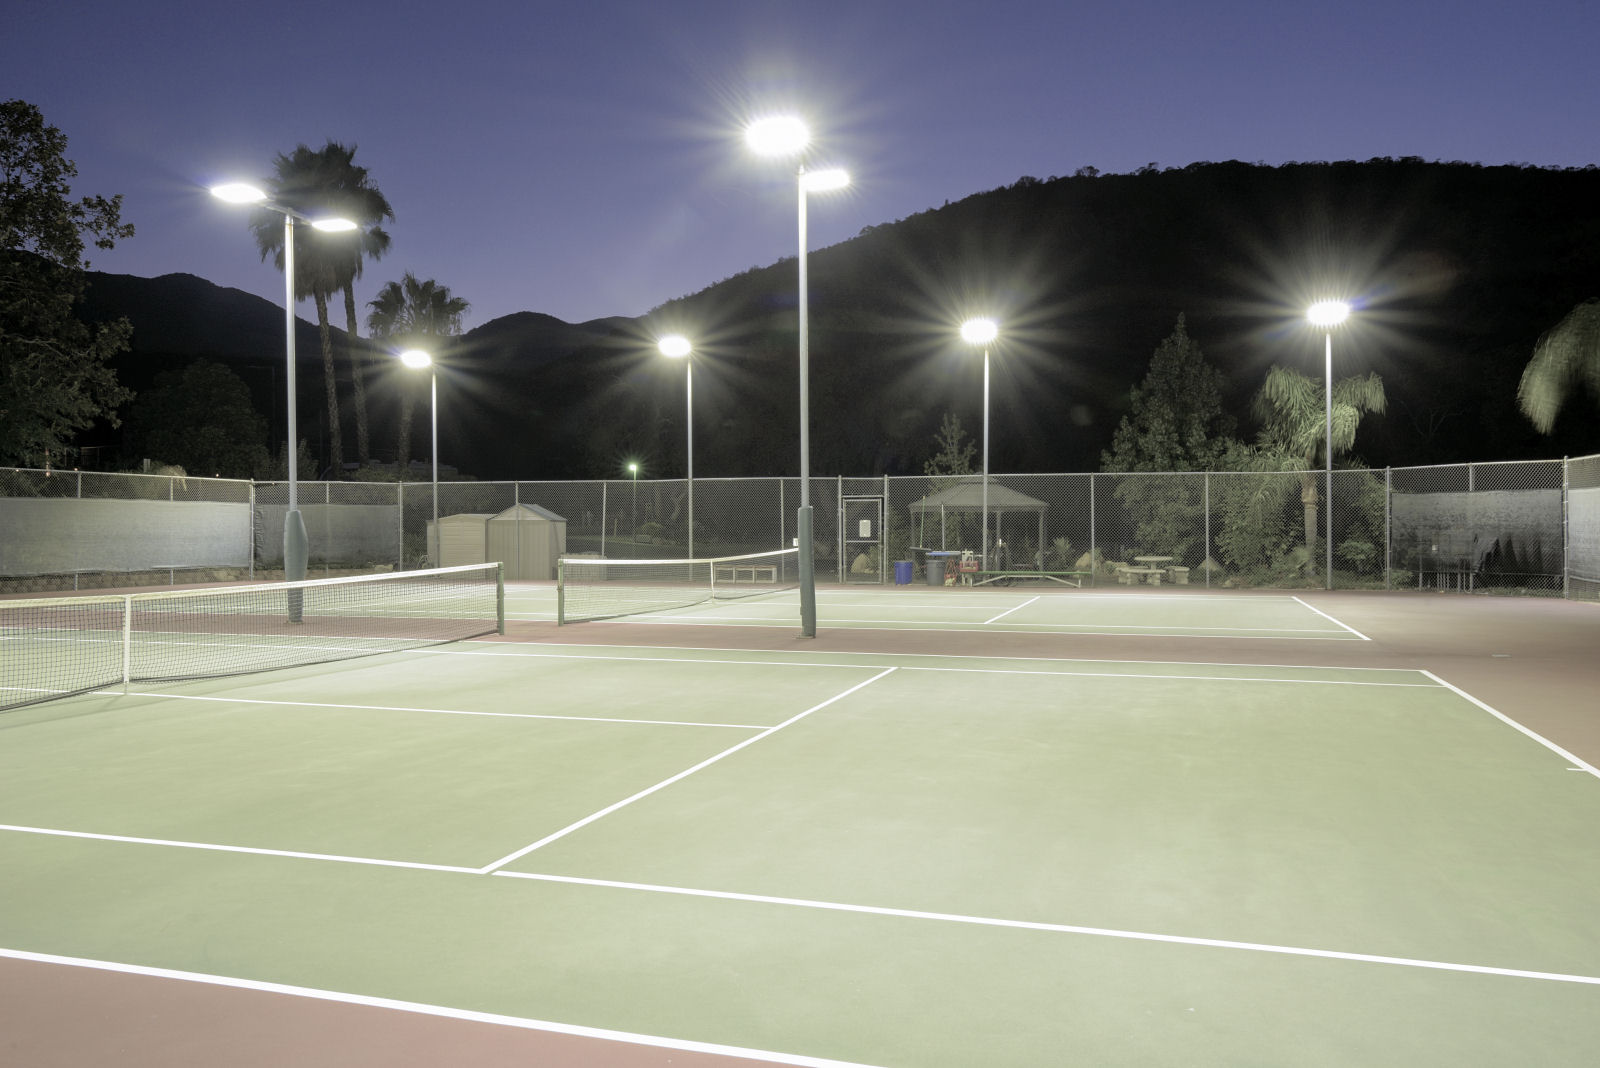 outdoor tennis court-3